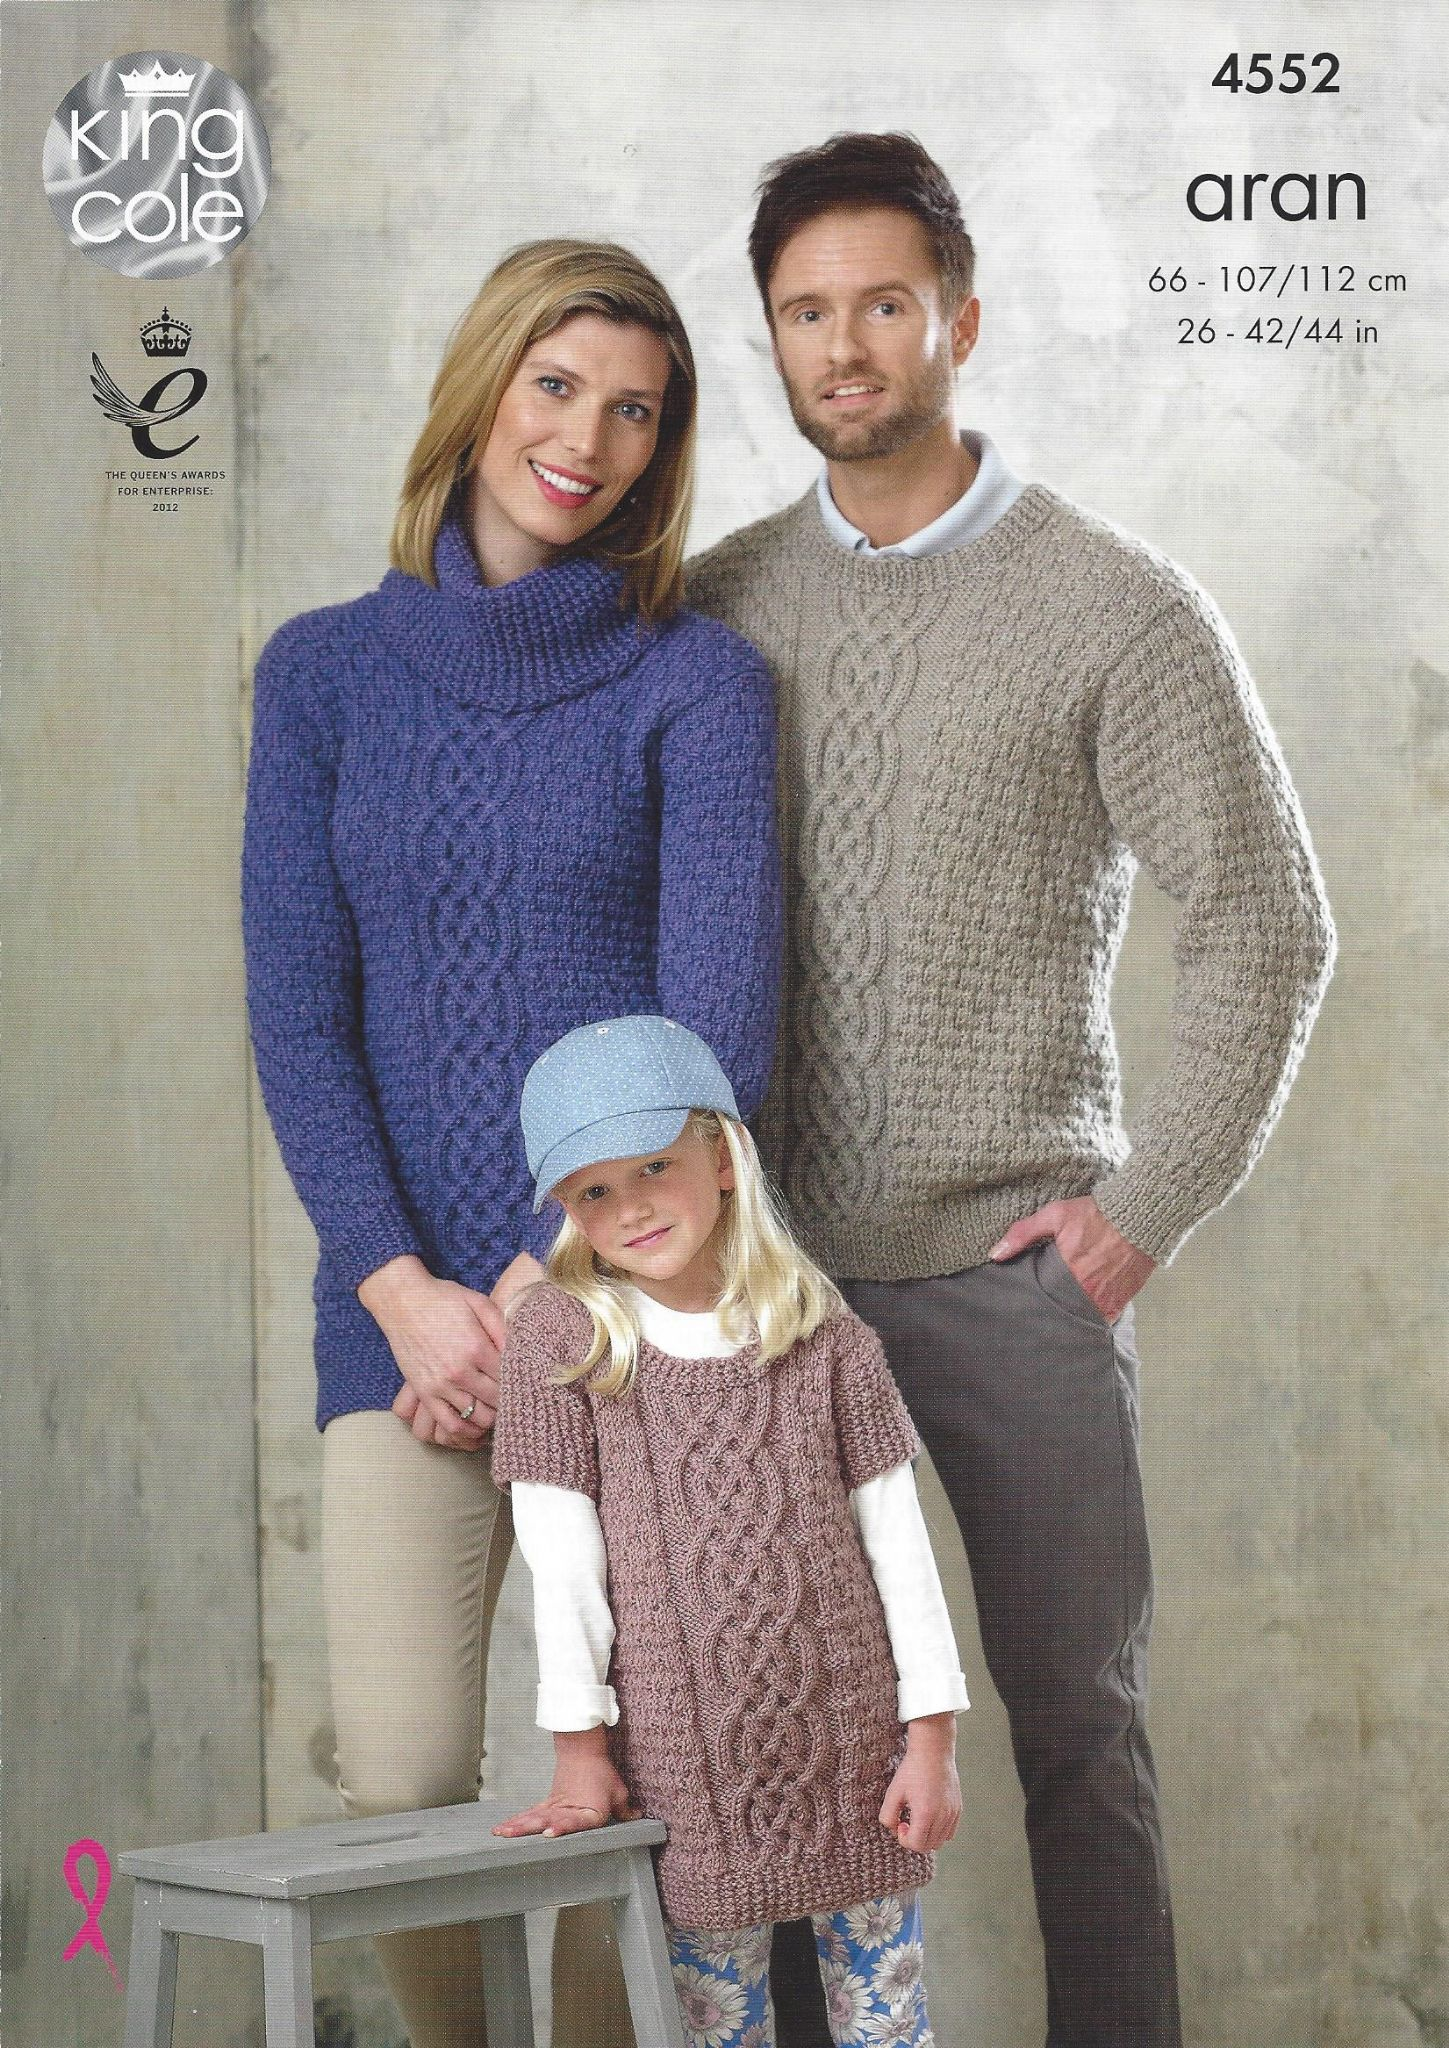 King Cole Aran Knitting Pattern - 4552 Sweater & Tunics